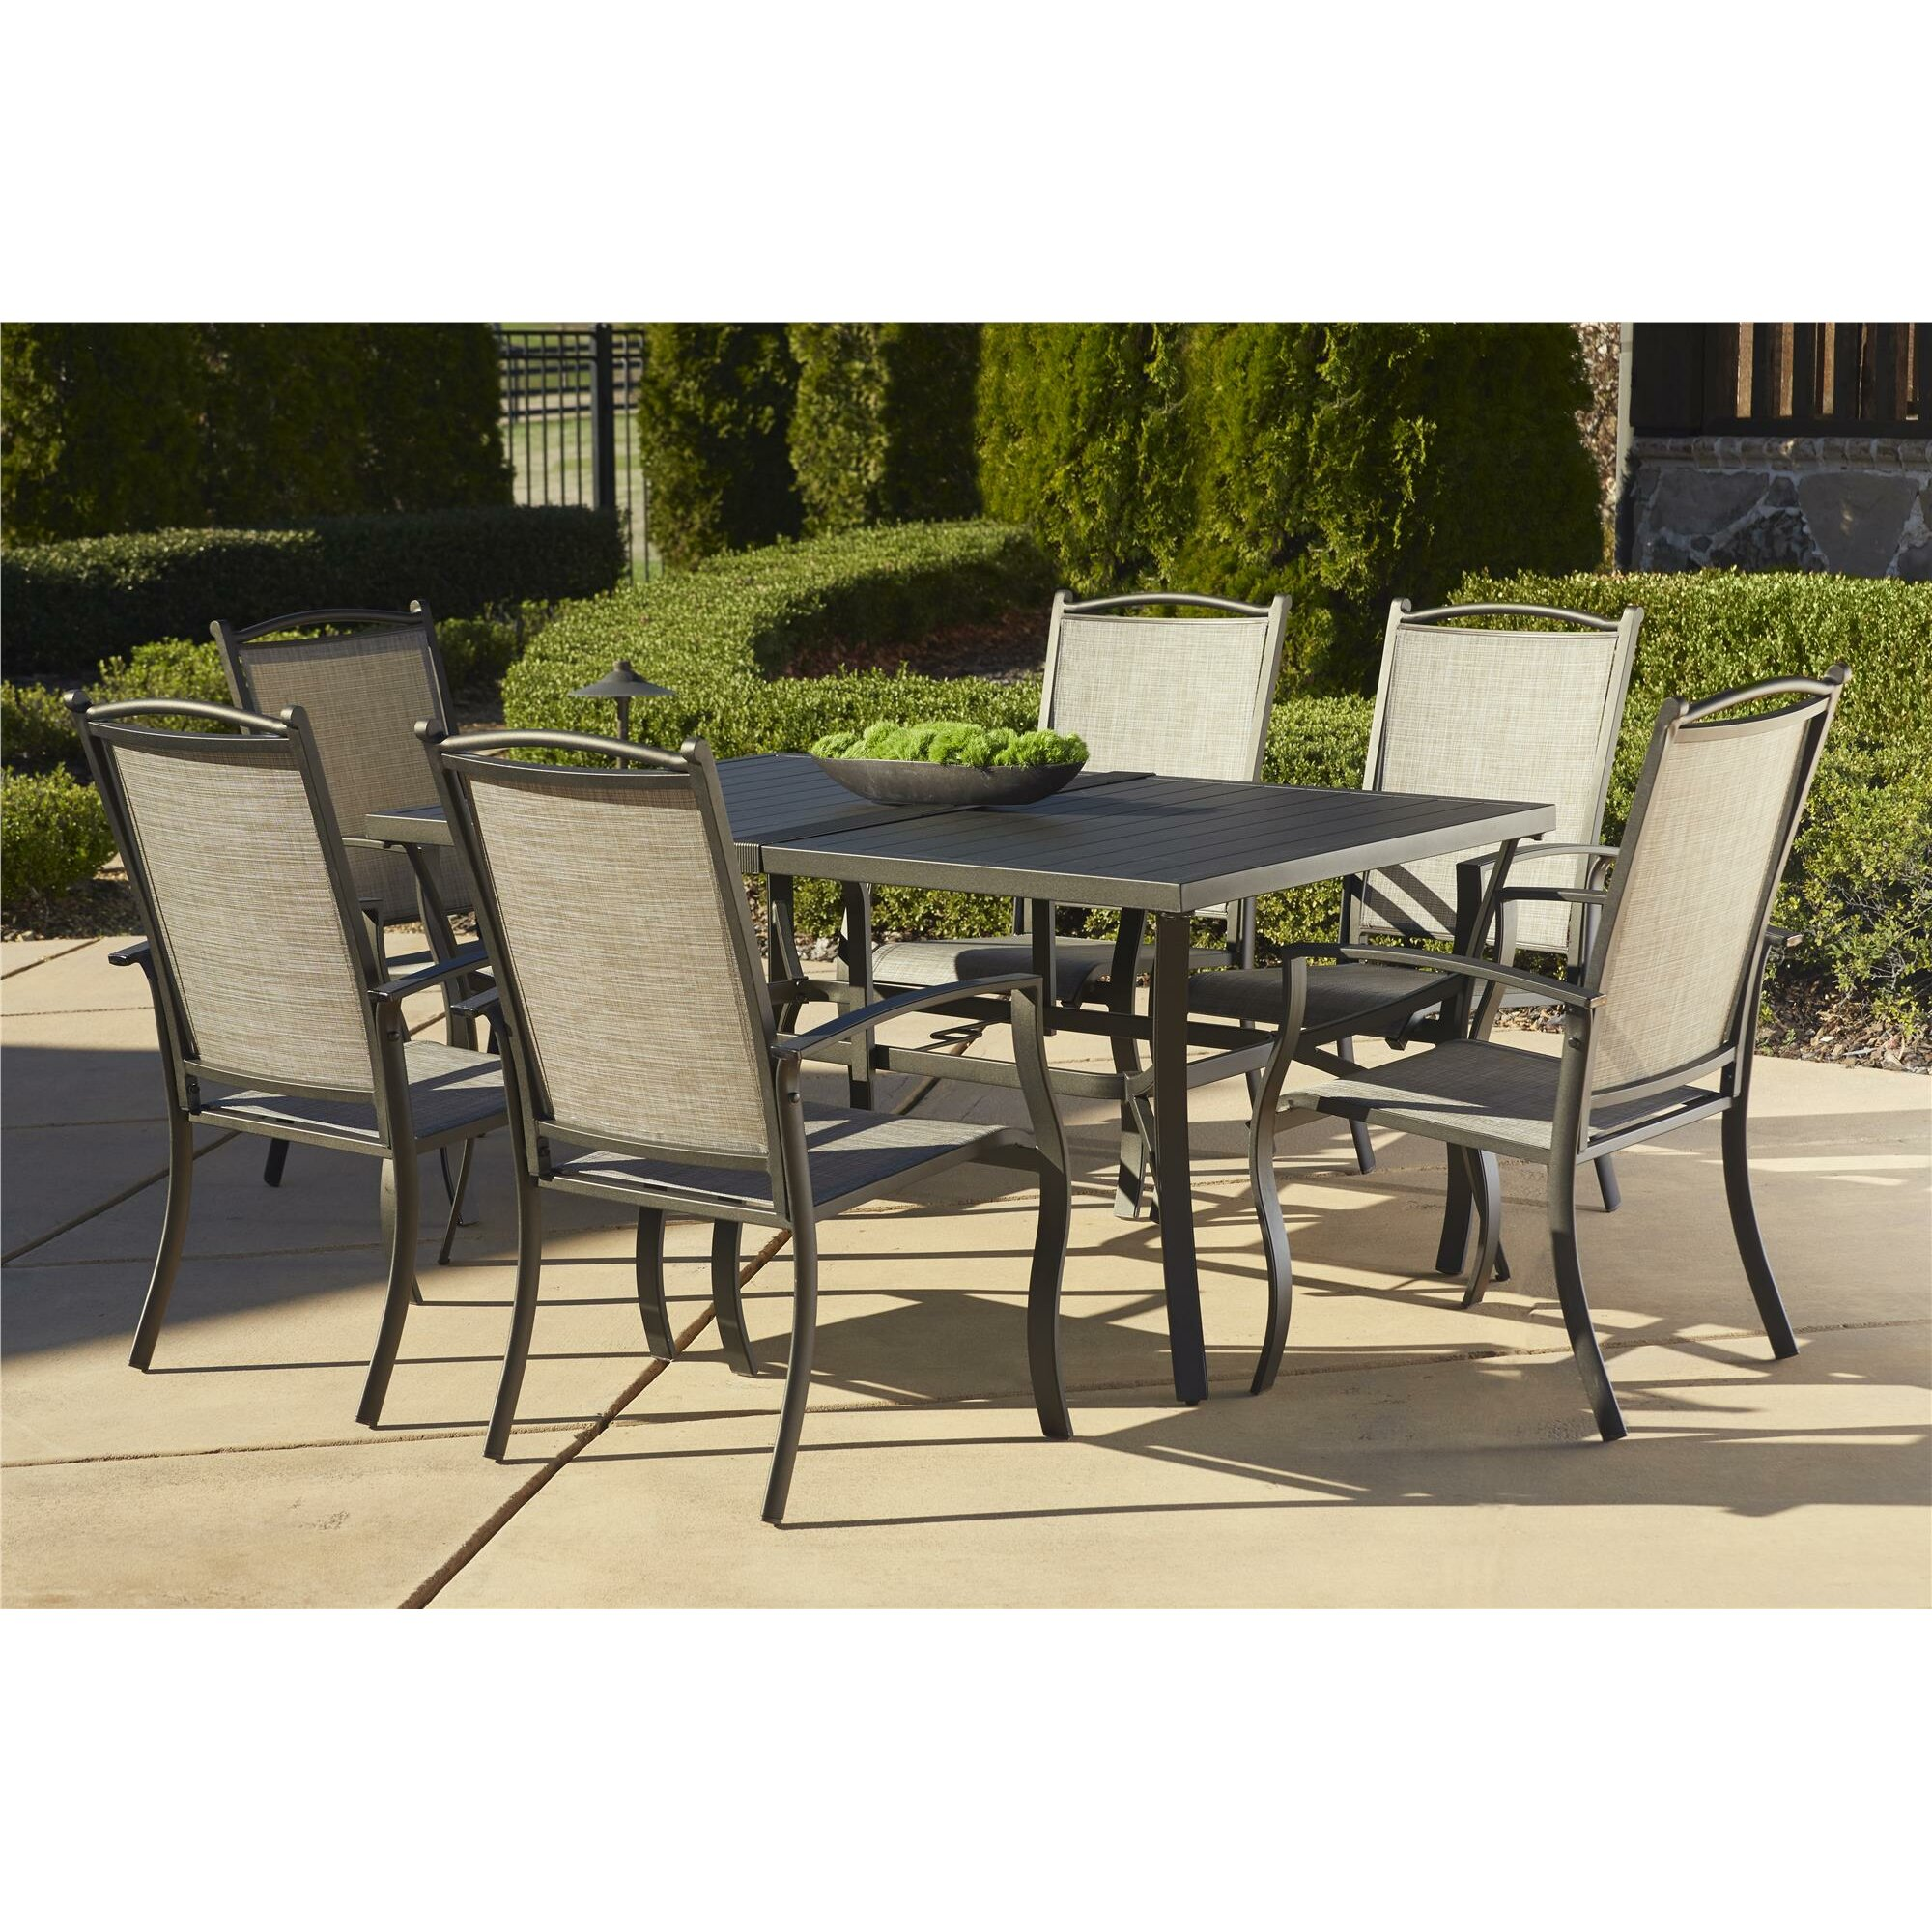 Three posts pavilion 7 piece dining set reviews wayfair for Outdoor patio furniture sets